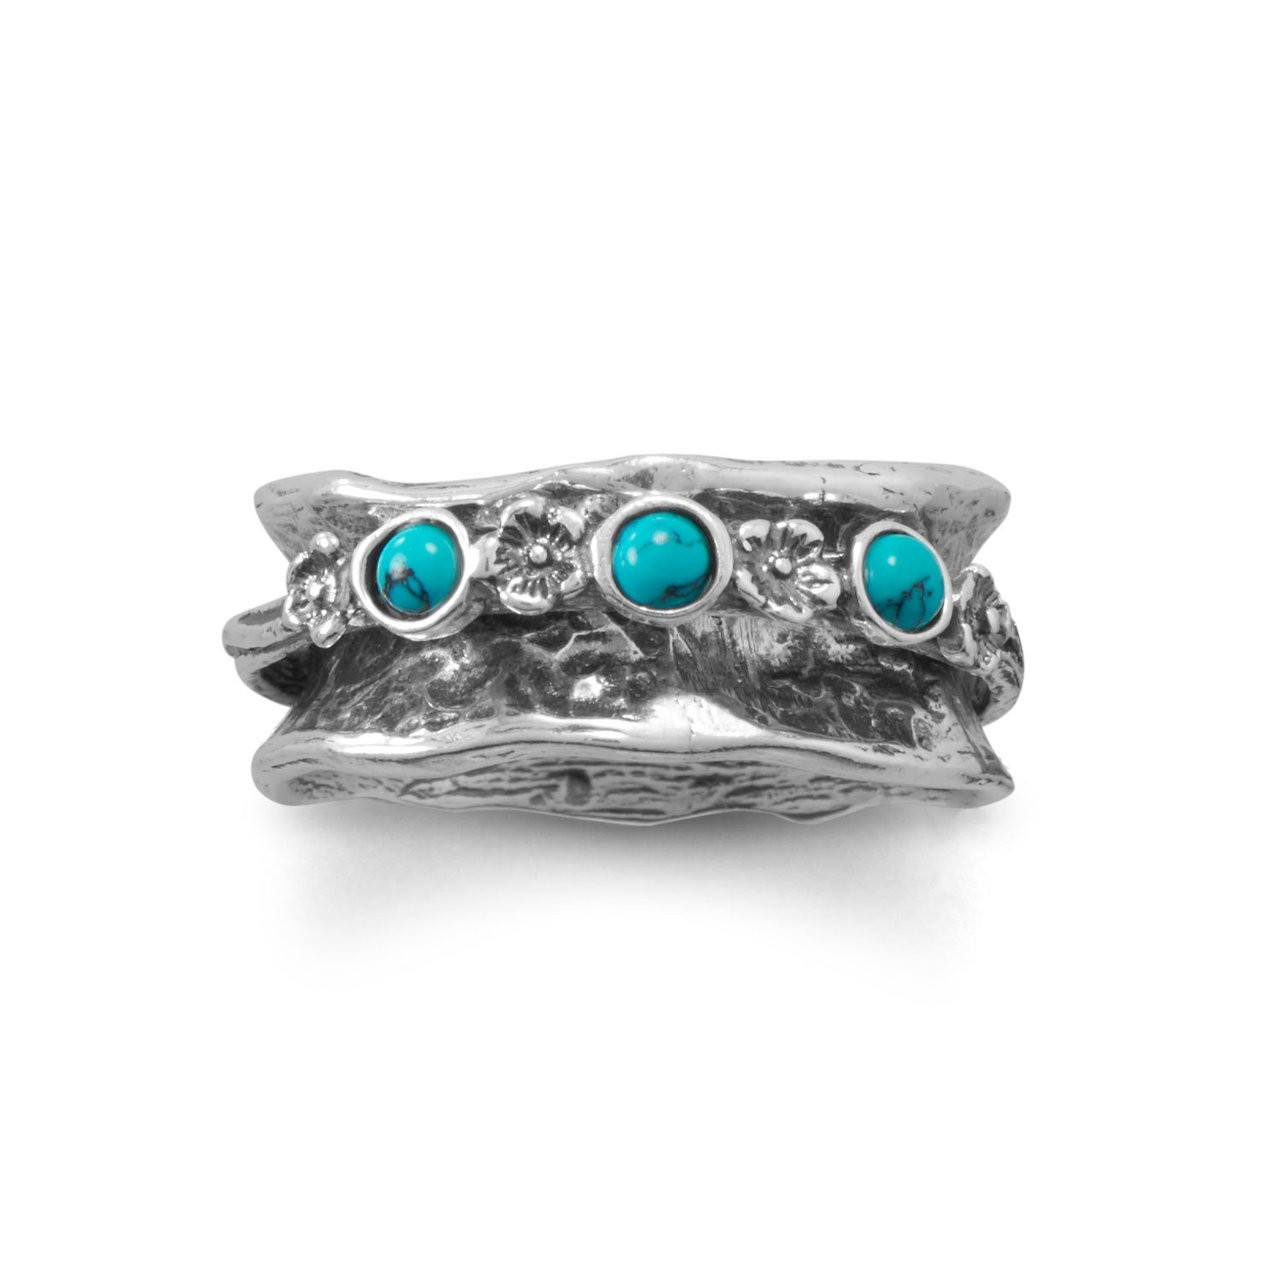 e4986075e Oxidized Spin Ring with Reconstituted Turquoise Stones - KVK Designs